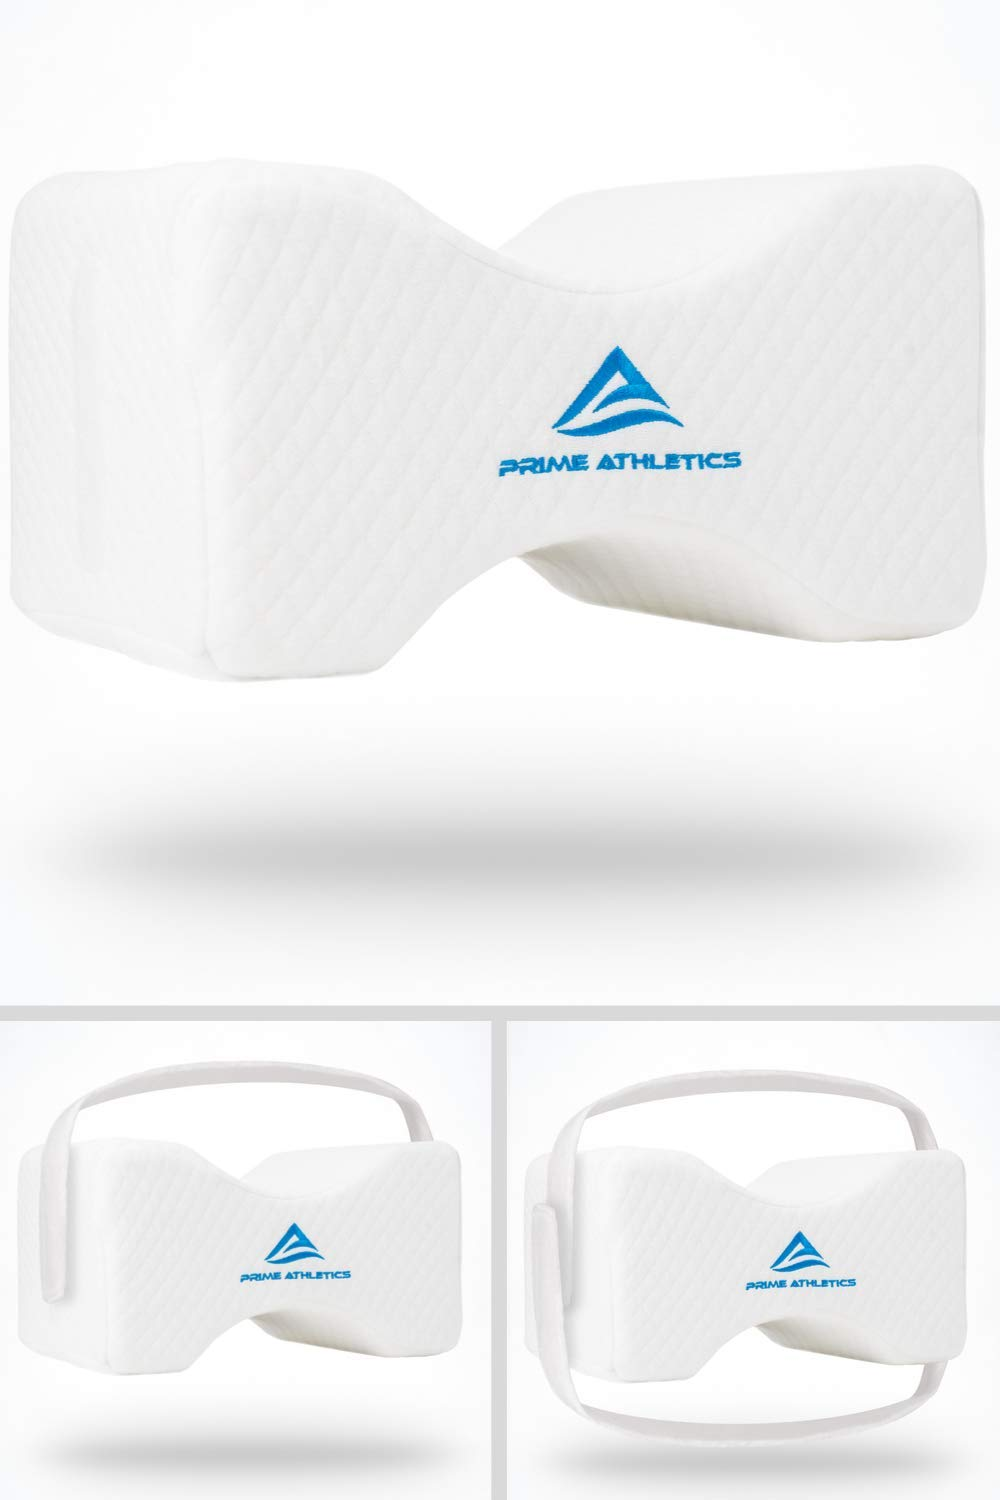 Prime Athletics Orthopedic Knee Pillow w/Adjustable & Removable Support Straps - Sciatica Back Pain Relief, Leg Pillow, Side Sleeper Pillow - Pregnancy & Hip Pain, Memory Foam Wedge Contour - (White) by Prime Athletics